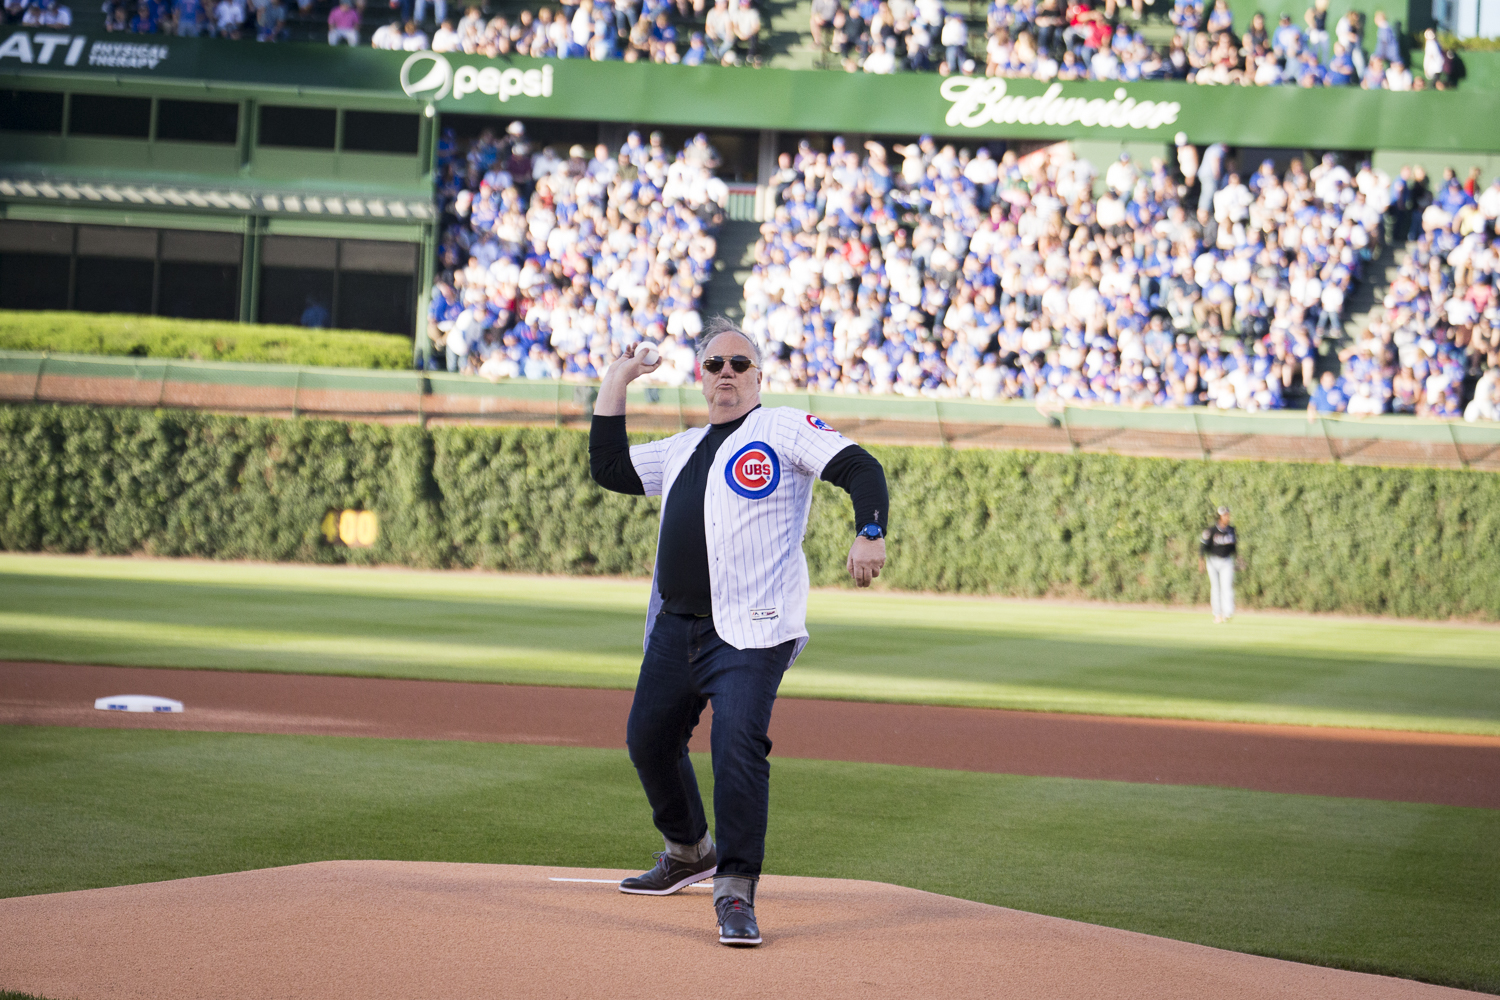 Tony Mantuano throws the first pitch at Wrigley Field.